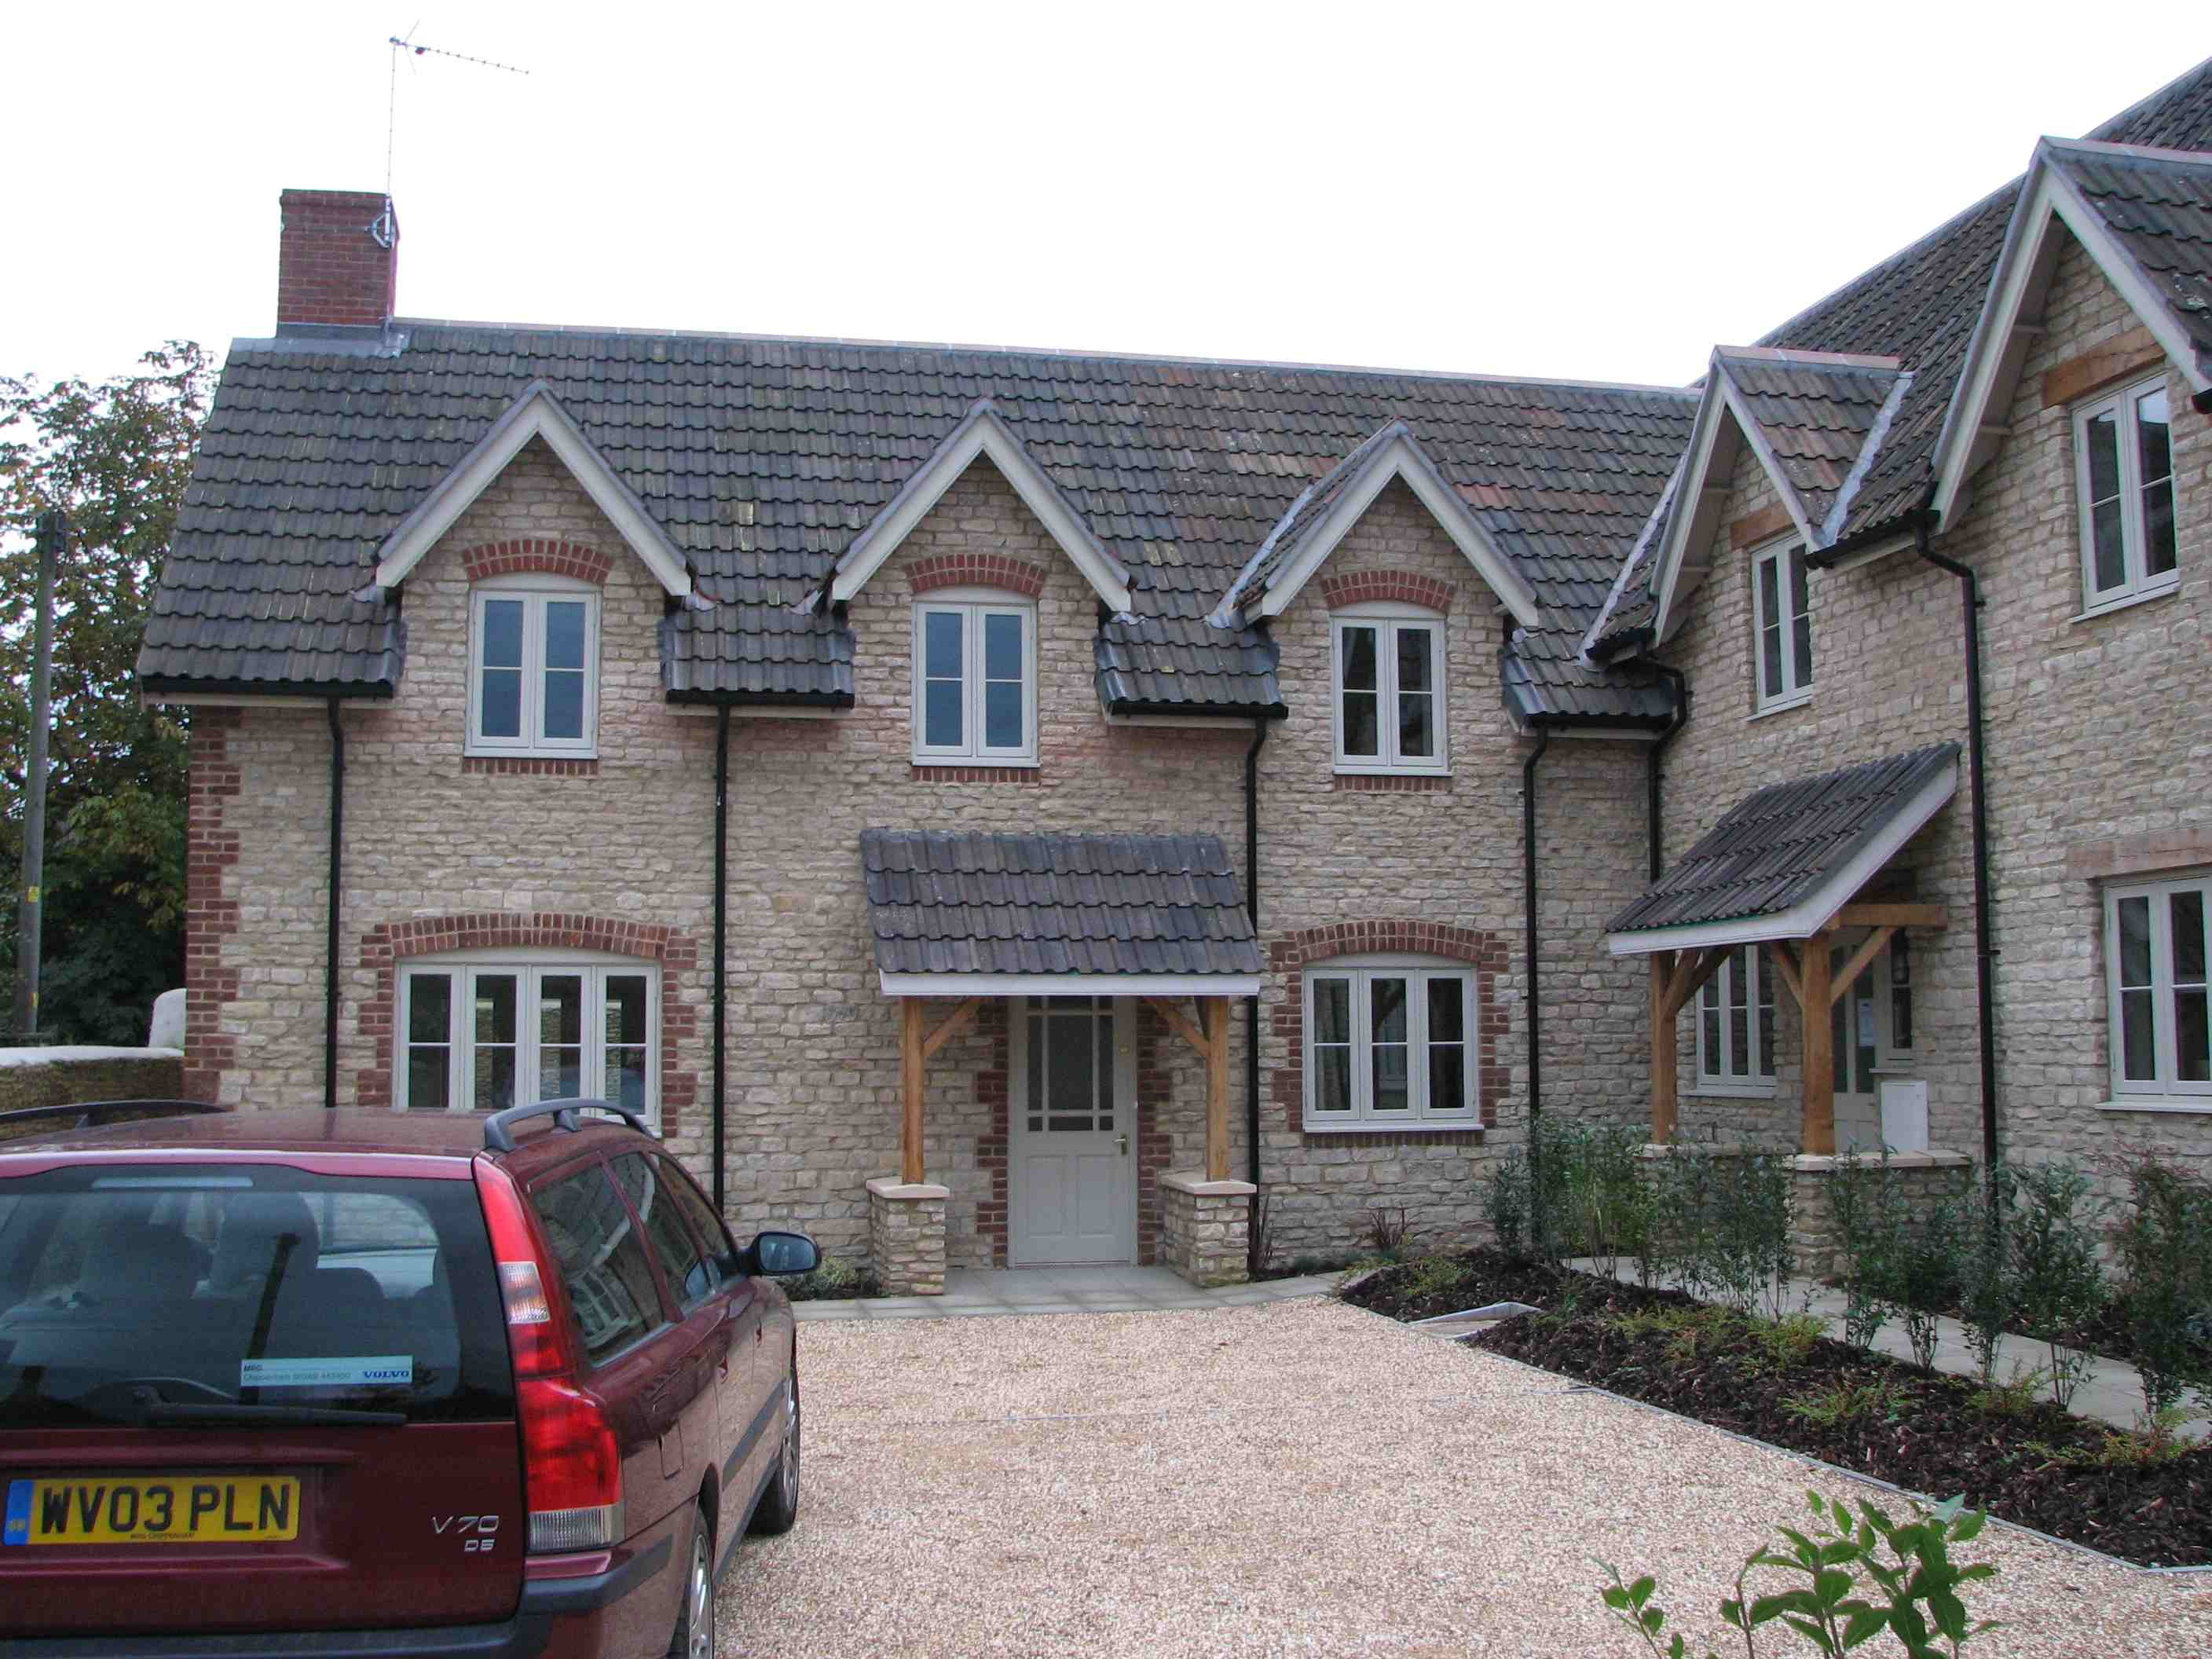 New Build Sutton Benger near Chippenham